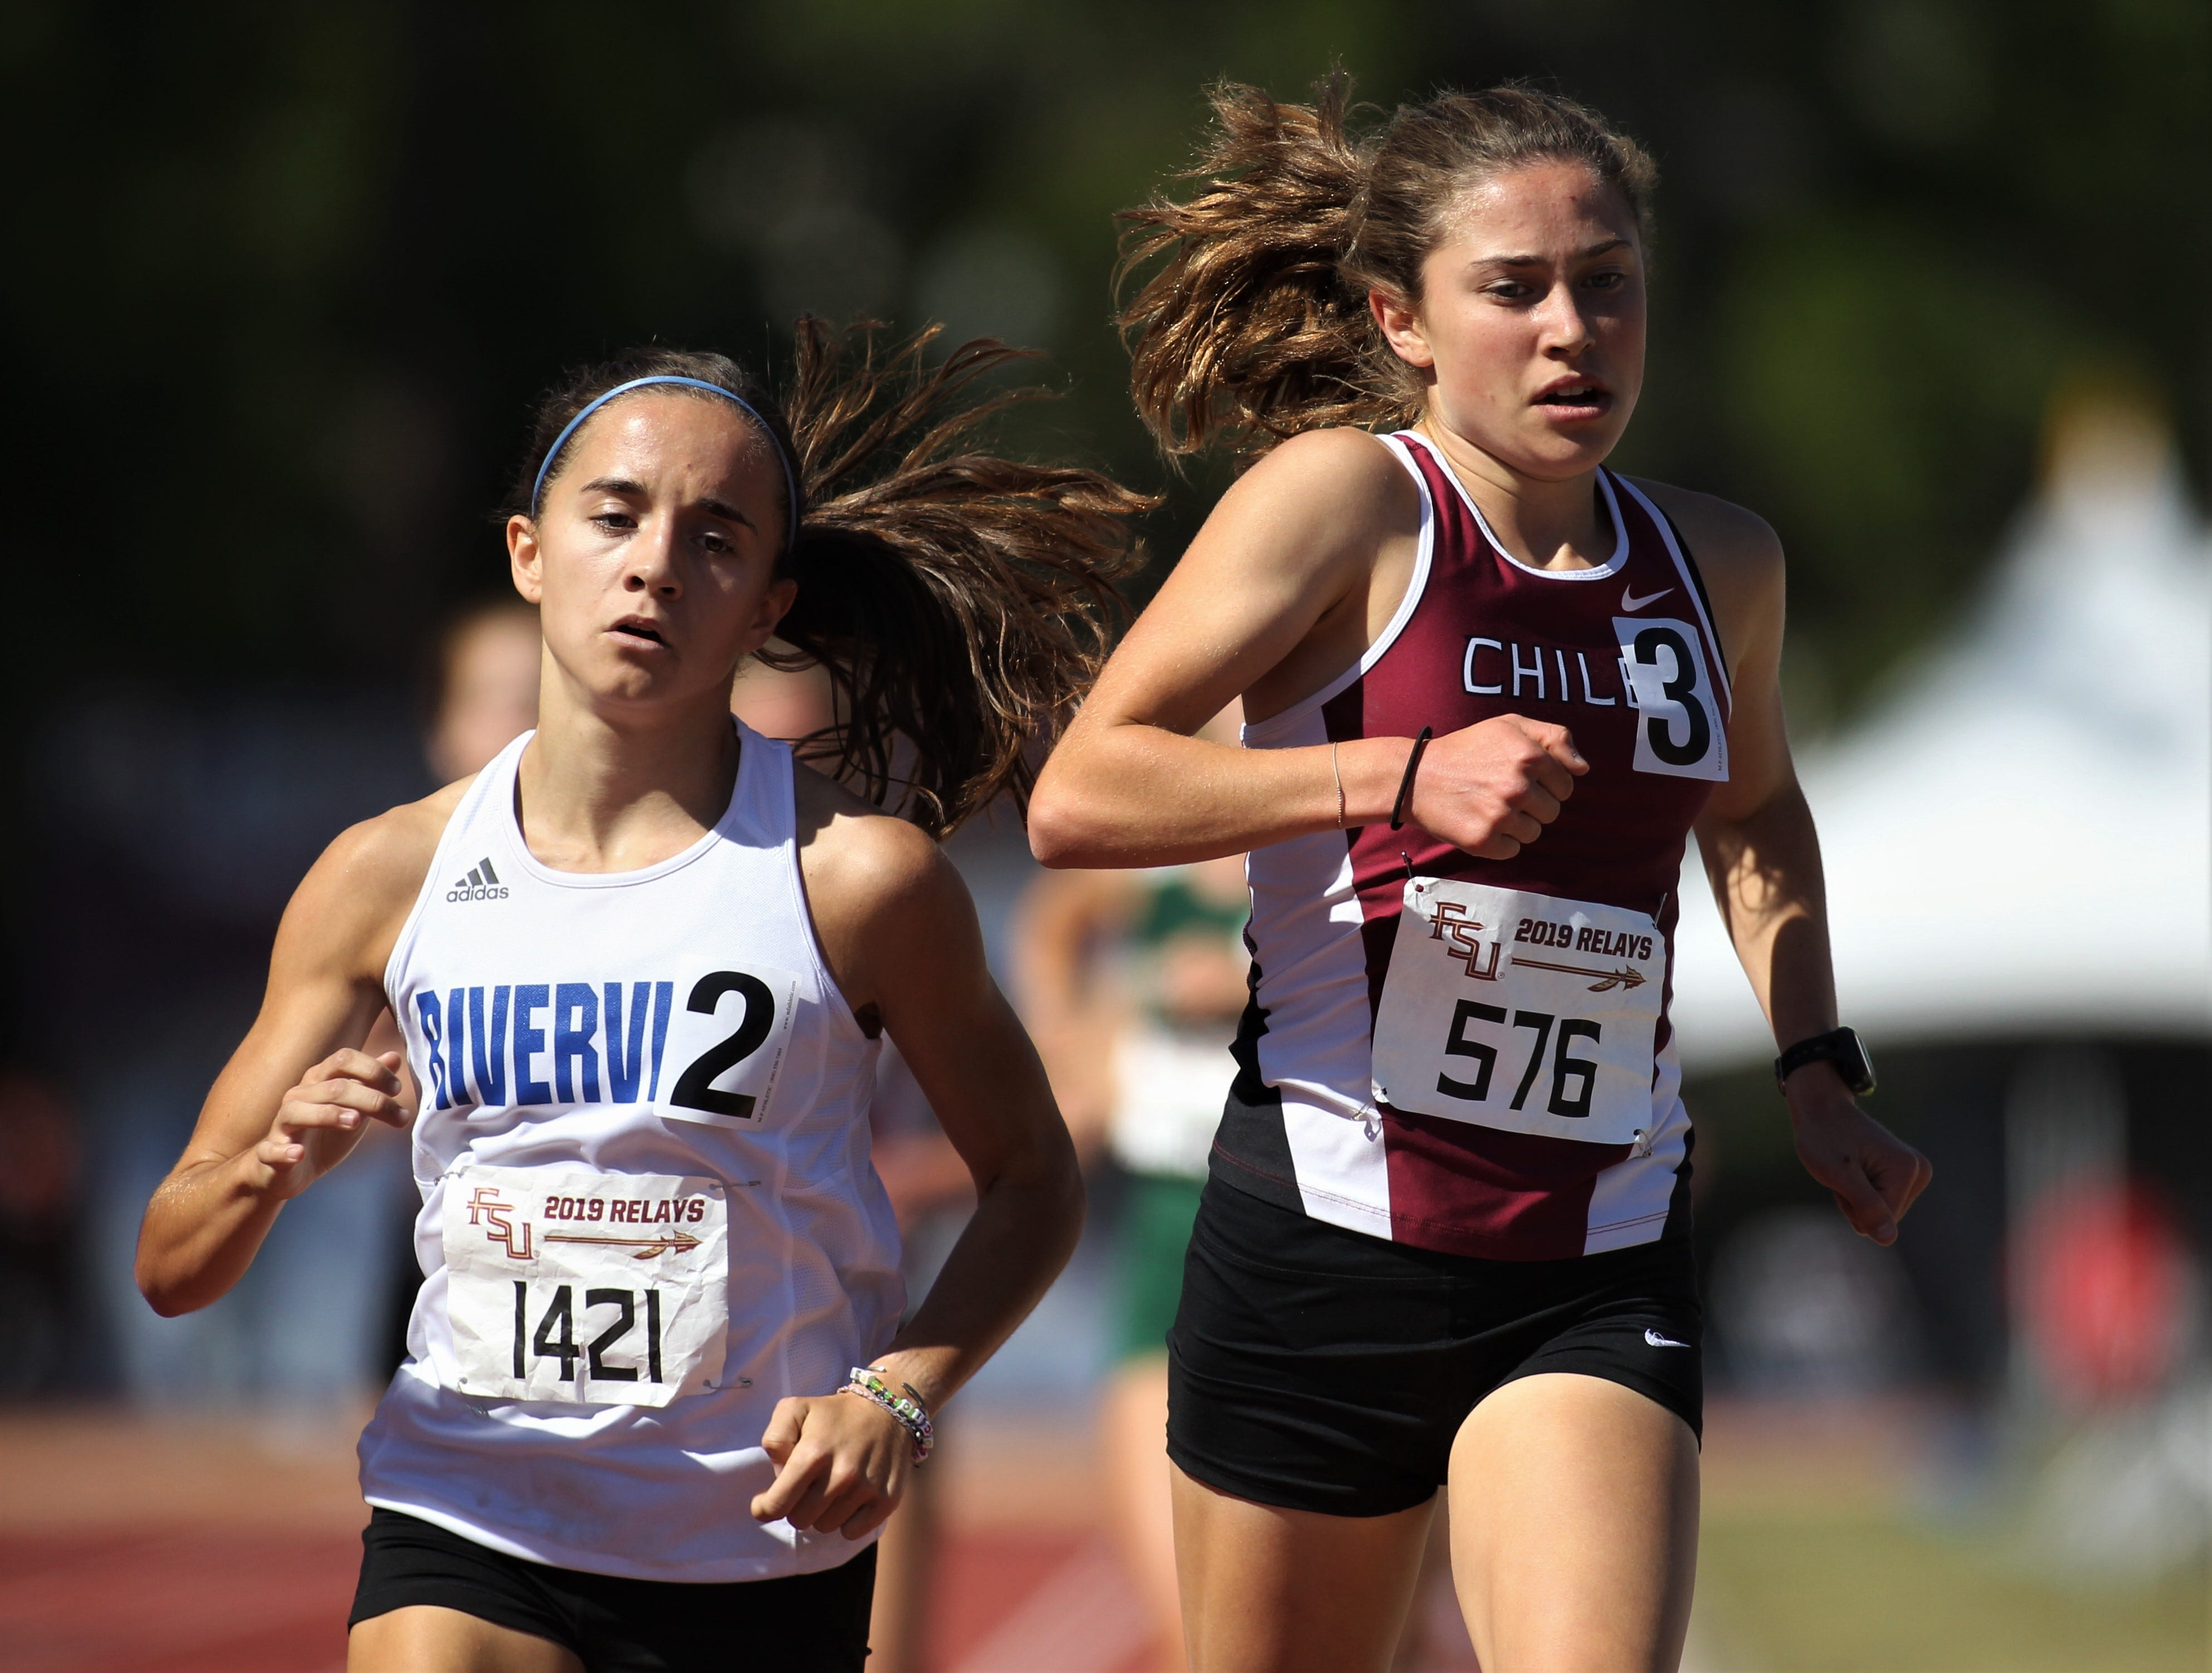 Chiles junior Alyson Churchill runs the 1600 Invite during the 40th annual FSU Relays at Mike Long Track on Saturday, March 23, 2019.